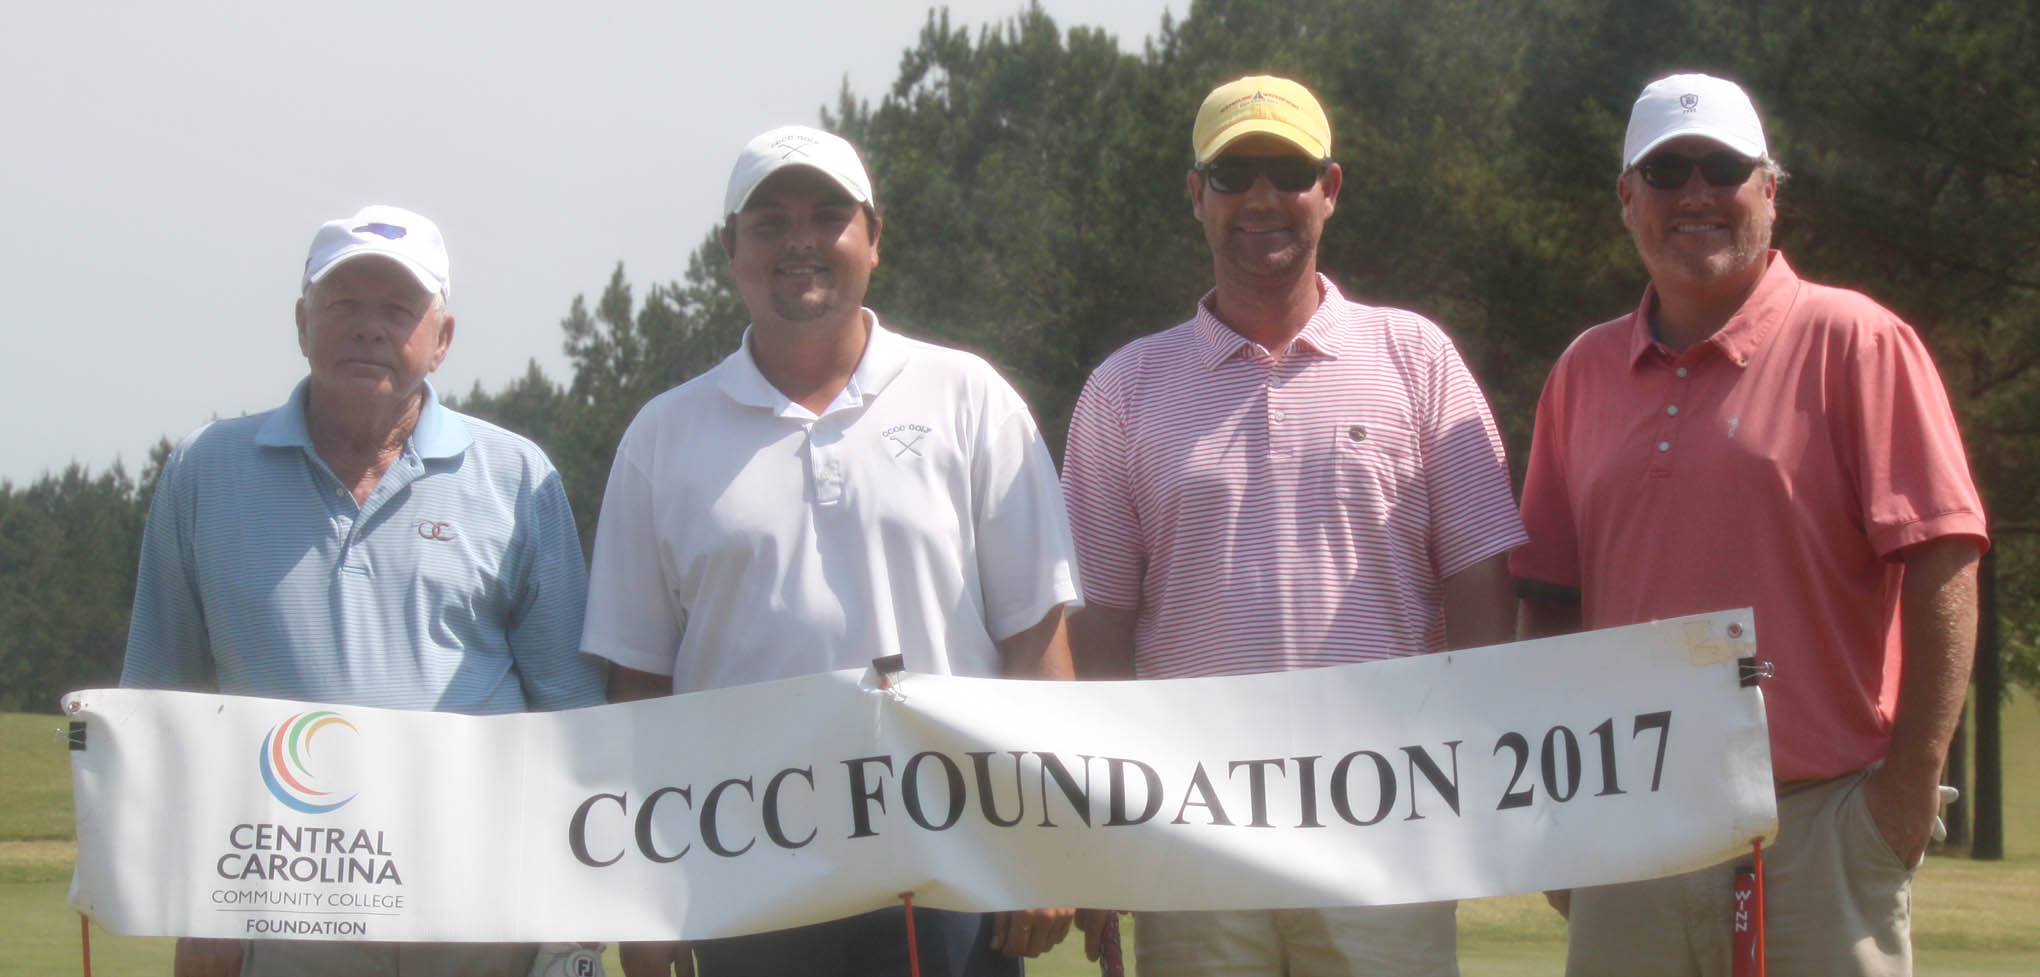 Click to enlarge,  Members of the first flight winning team in the fourth Central Carolina Community College Foundation Chatham Golf Classic were Bobby Powell, Jack Radley, David Wicker, and Andy Phillips. For information about the Foundation, donating to it, establishing a scholarship, or other fund-raising events, contact Emily Hare, Executive Director of the CCCC Foundation, 919-718-7230, or ehare@cccc.edu. Information is also available at the CCCC Foundation website, www.cccc.edu/foundation.